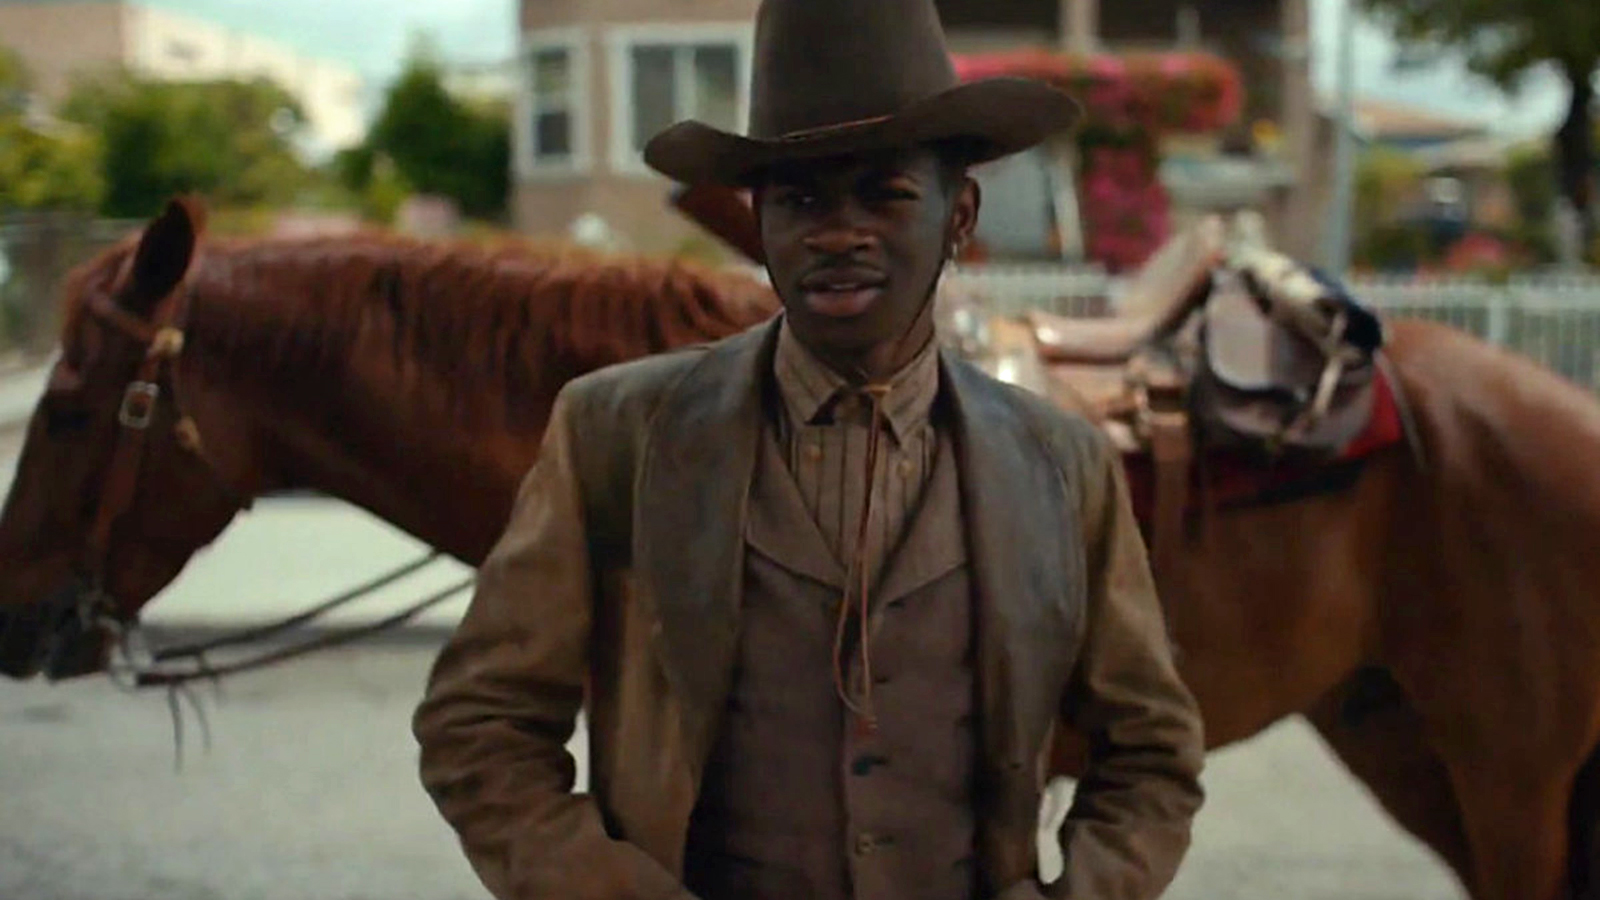 Lil Nas X in Old Town Road